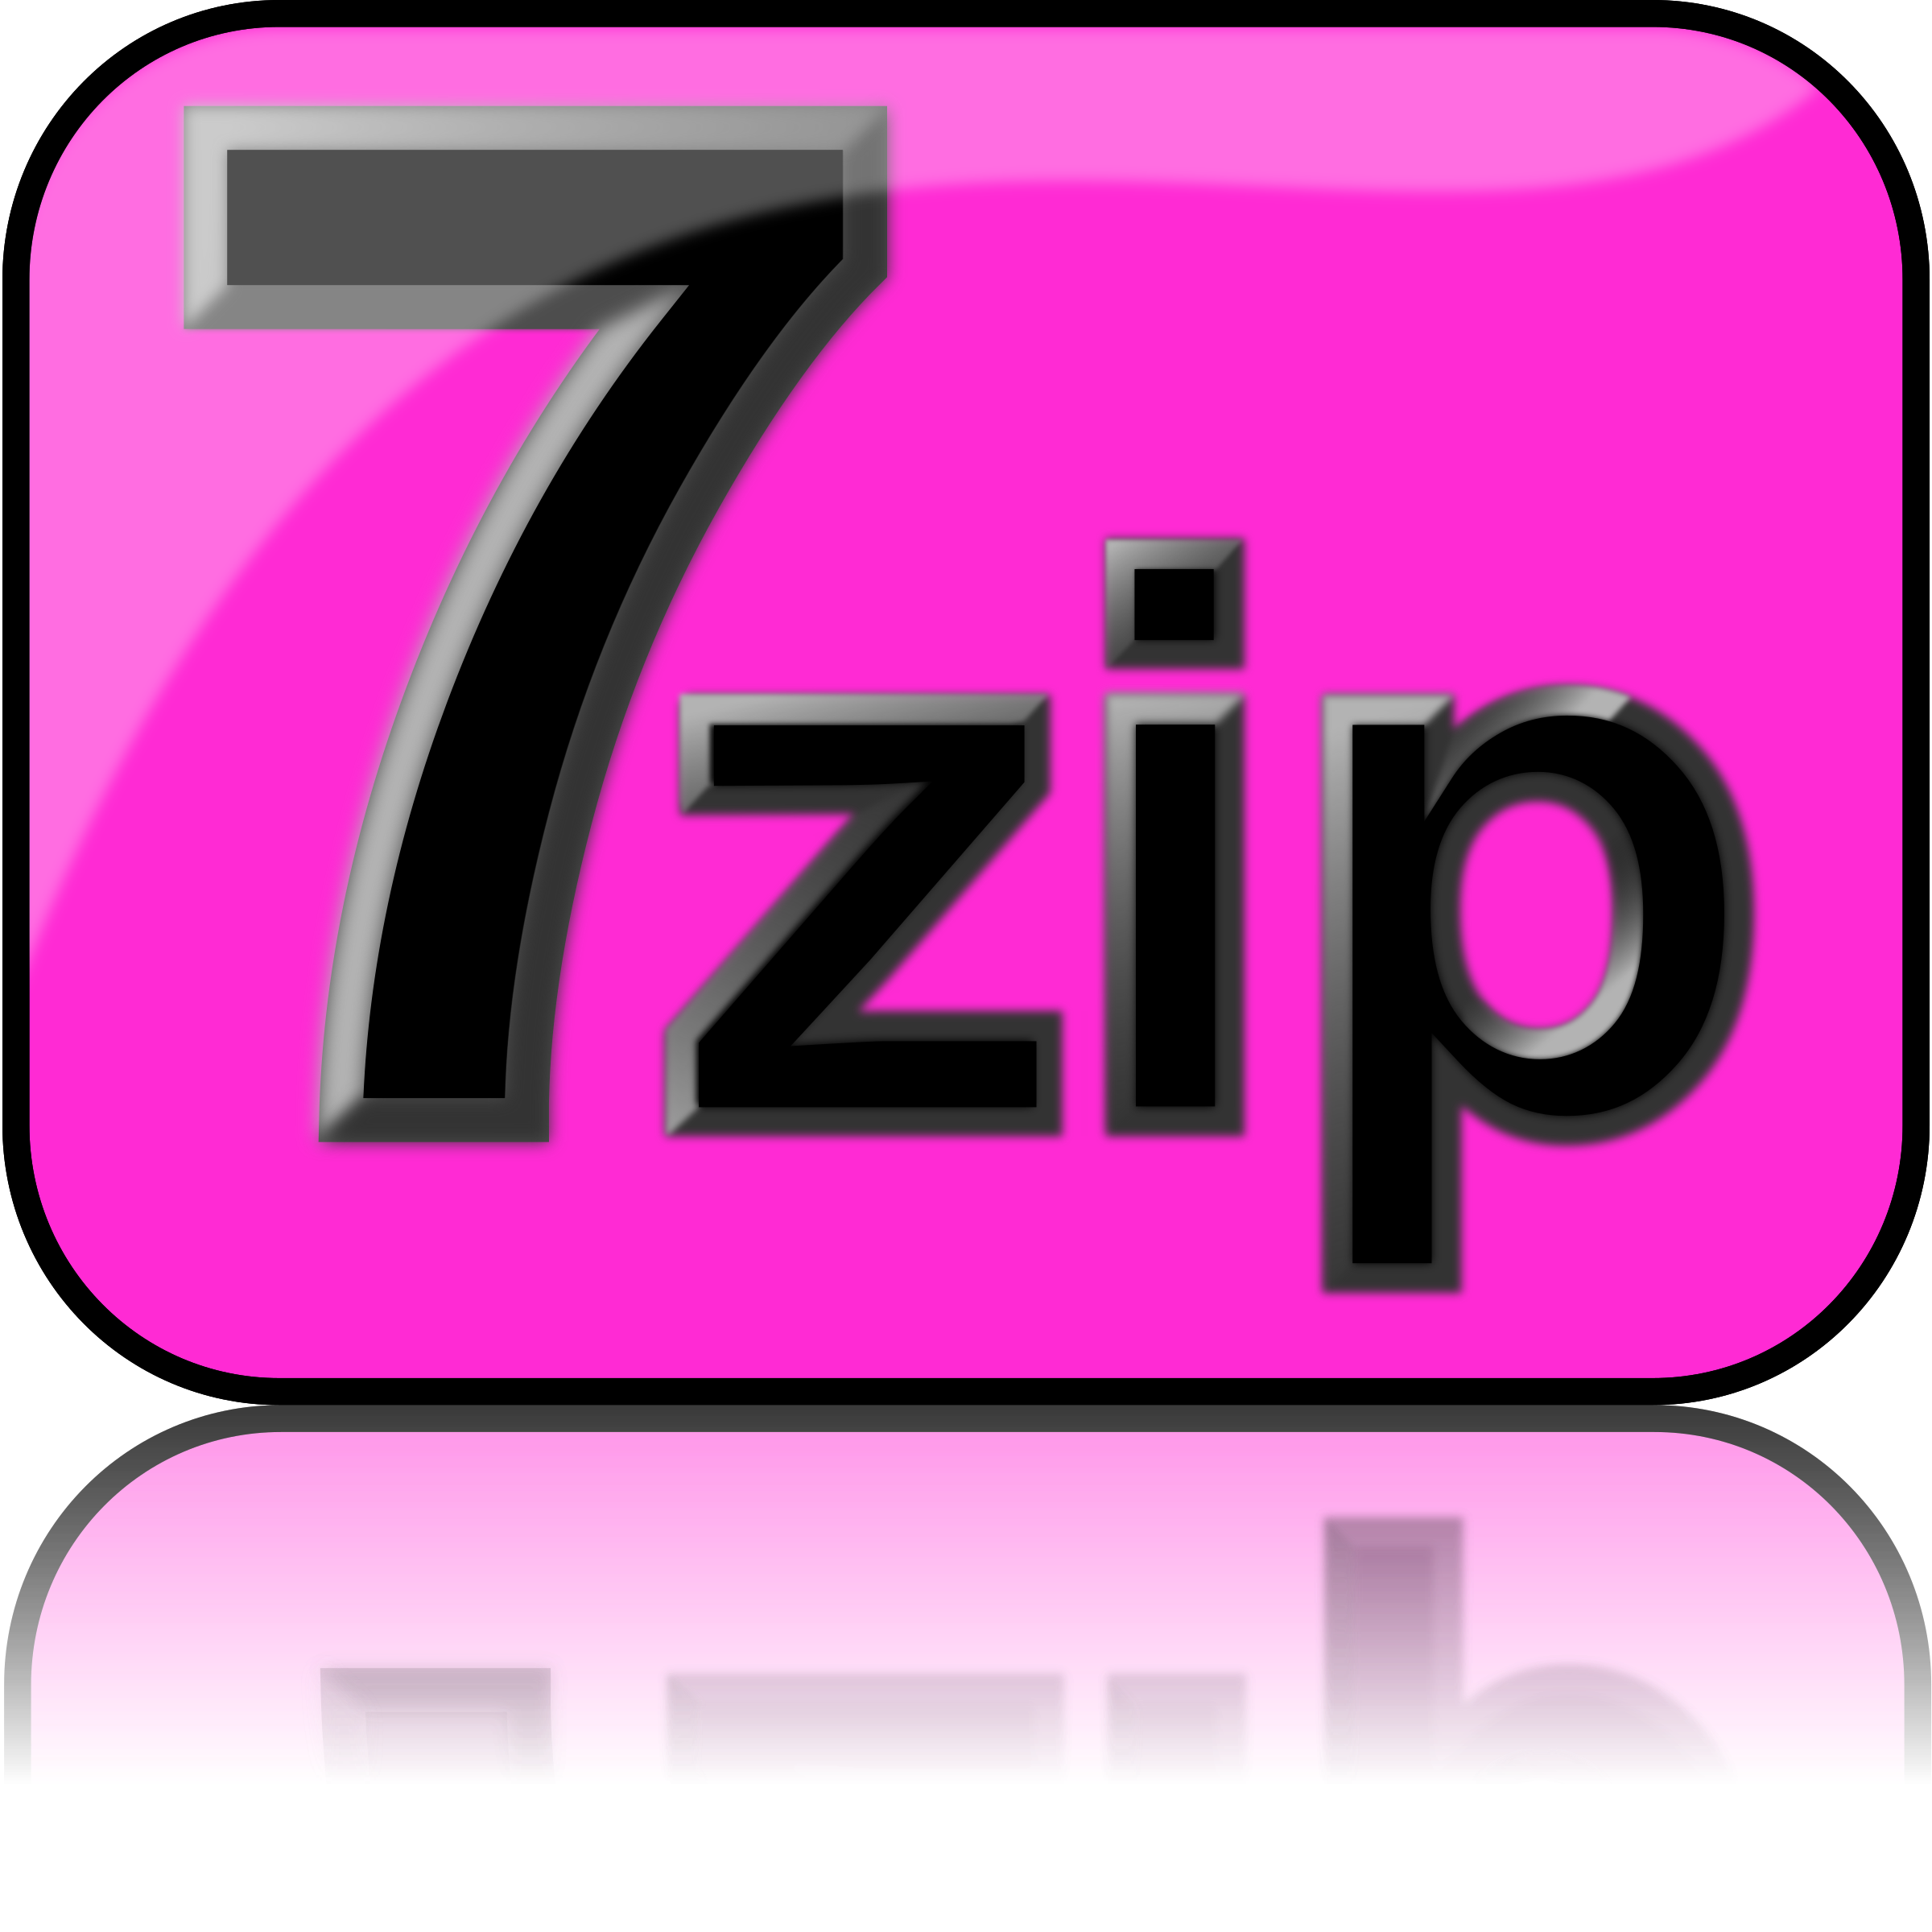 7zip Glossy Extrude Magenta by kg